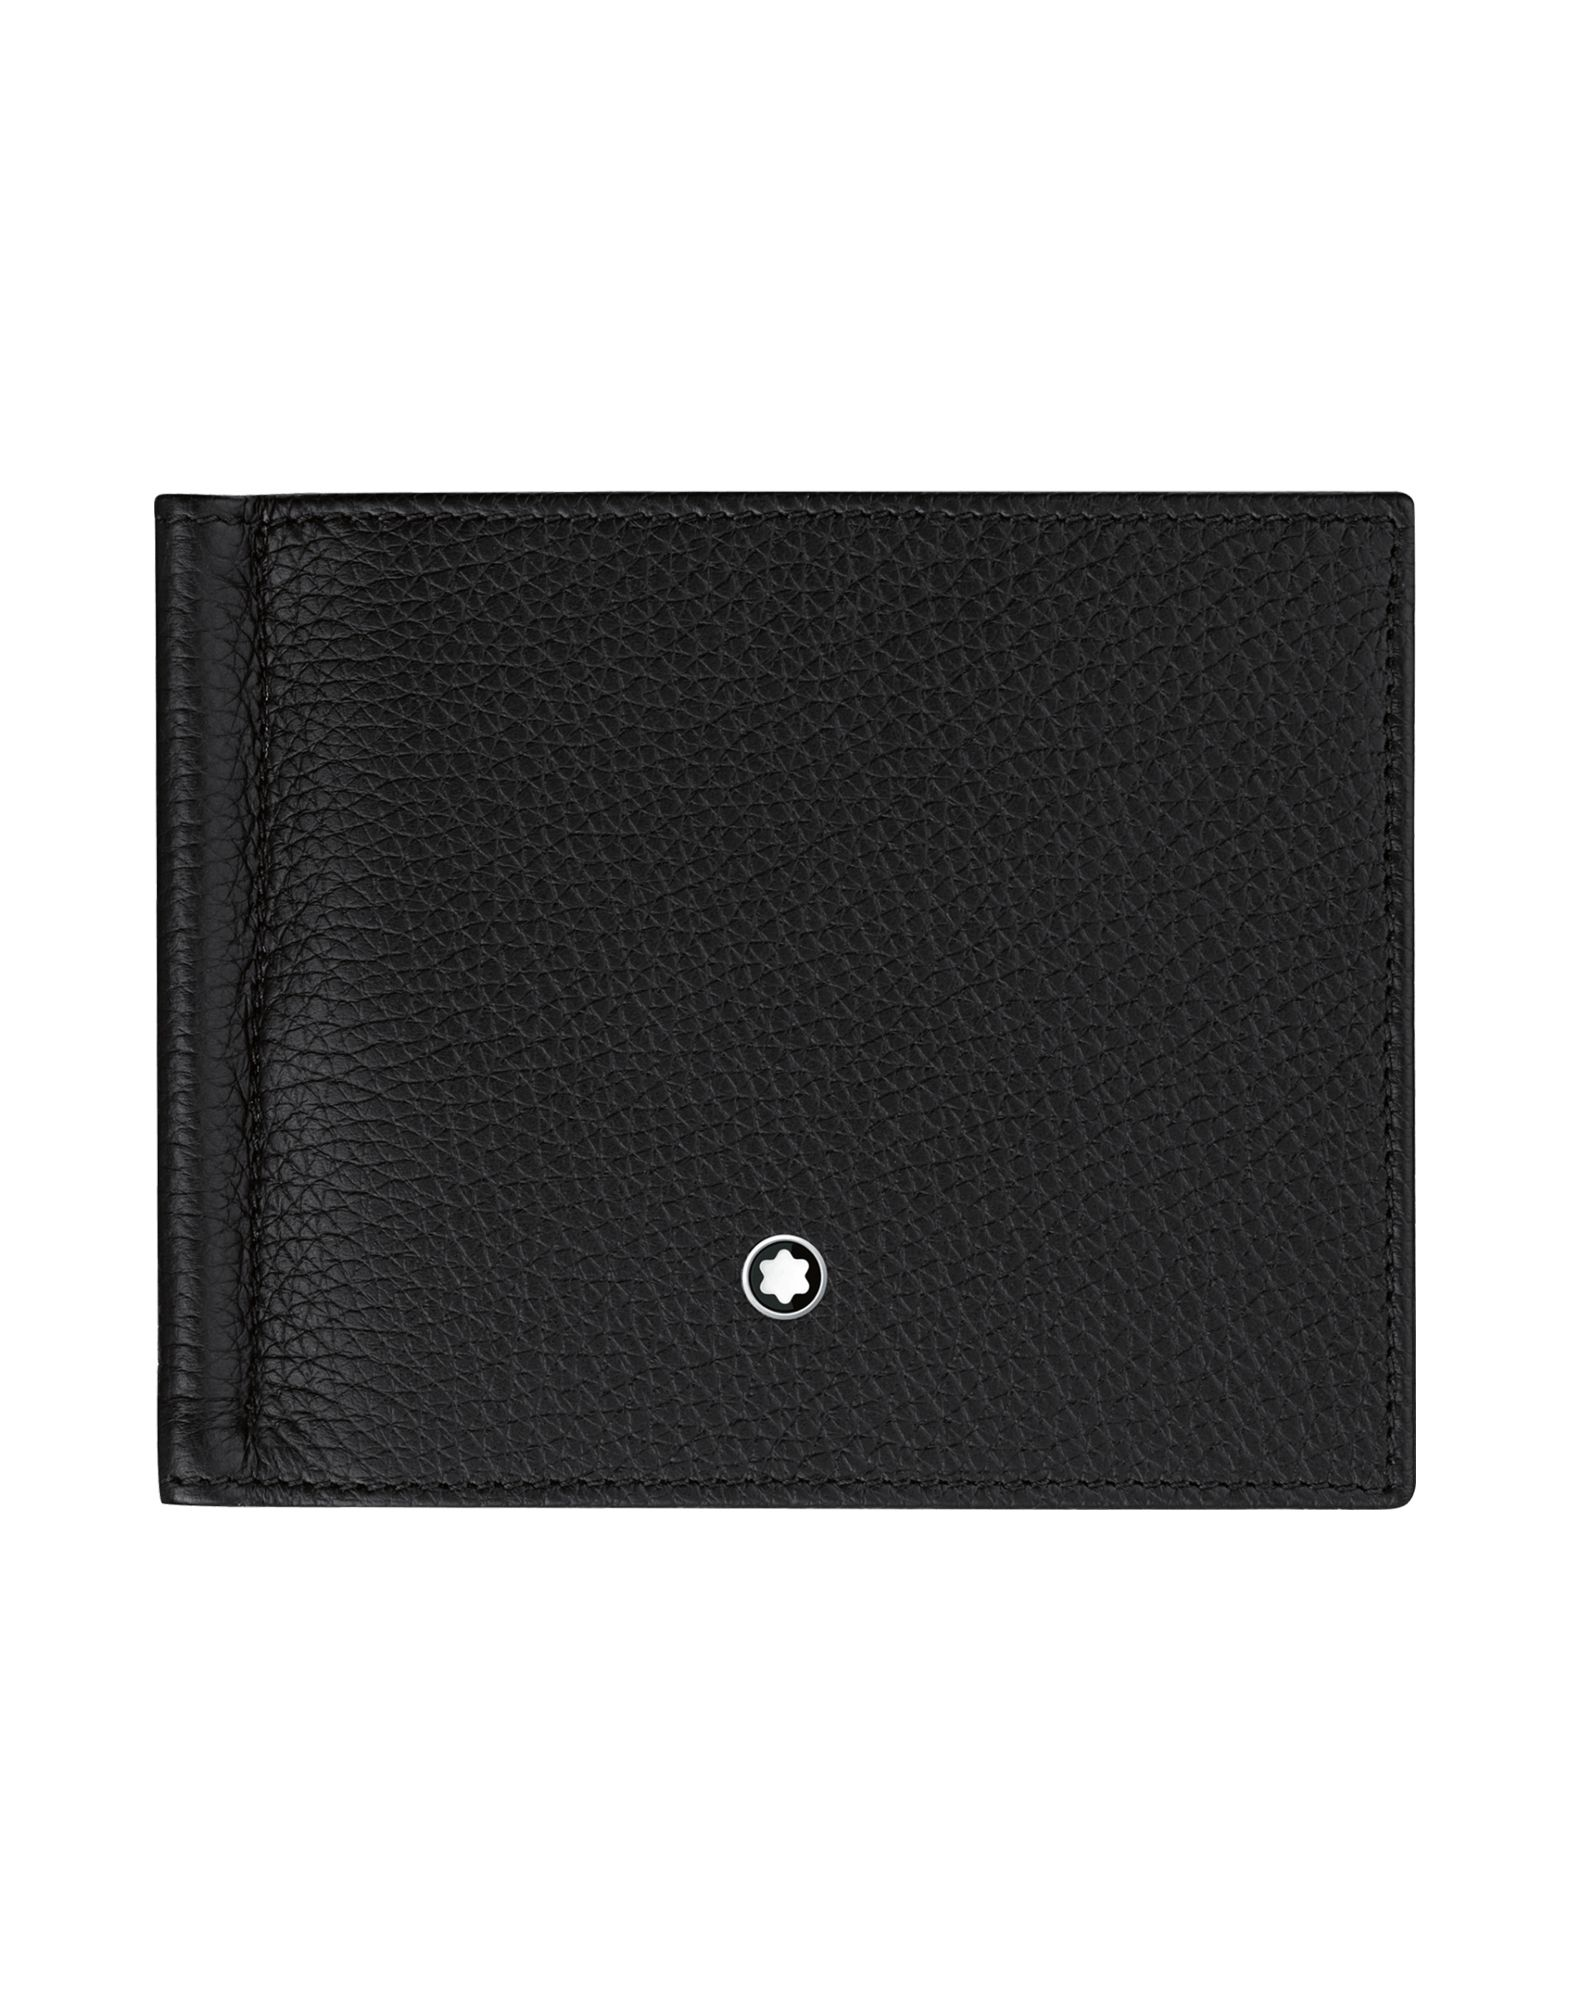 Men\'s wallet online: leather, travel and card wallets | YOOX